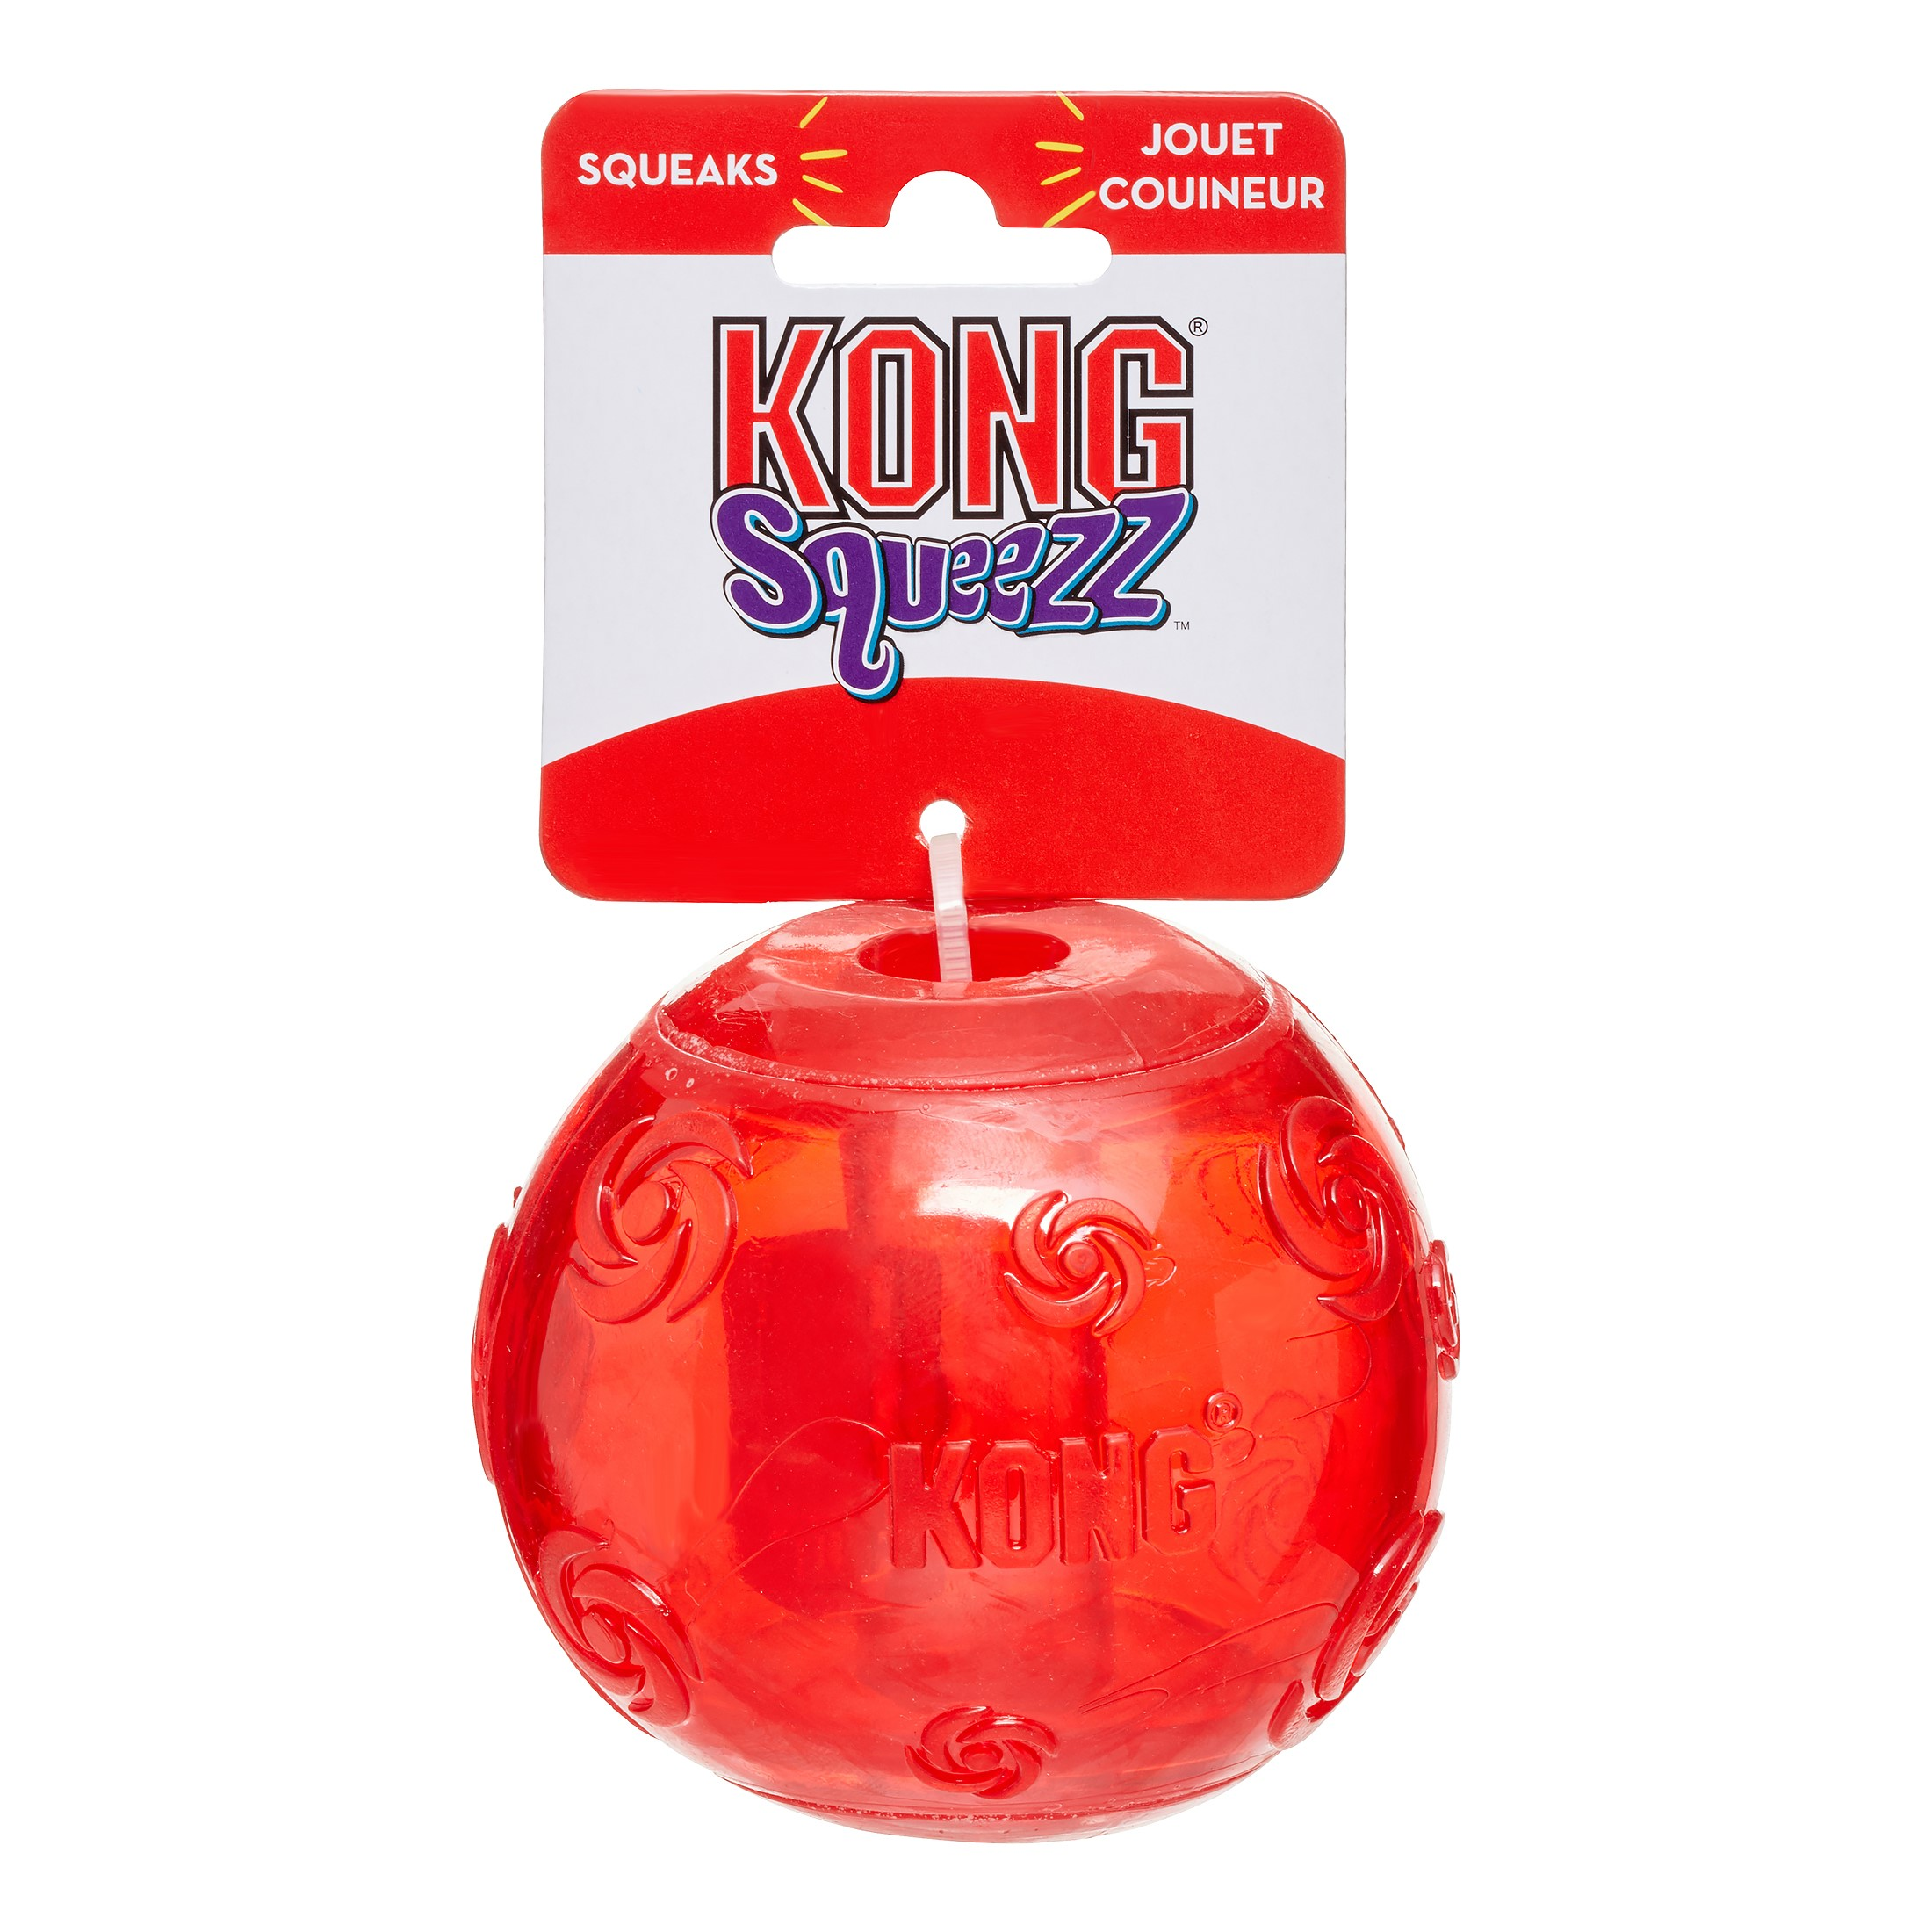 KONG Squeezz Ball Dog Toy, X-Large, Assorted Colors